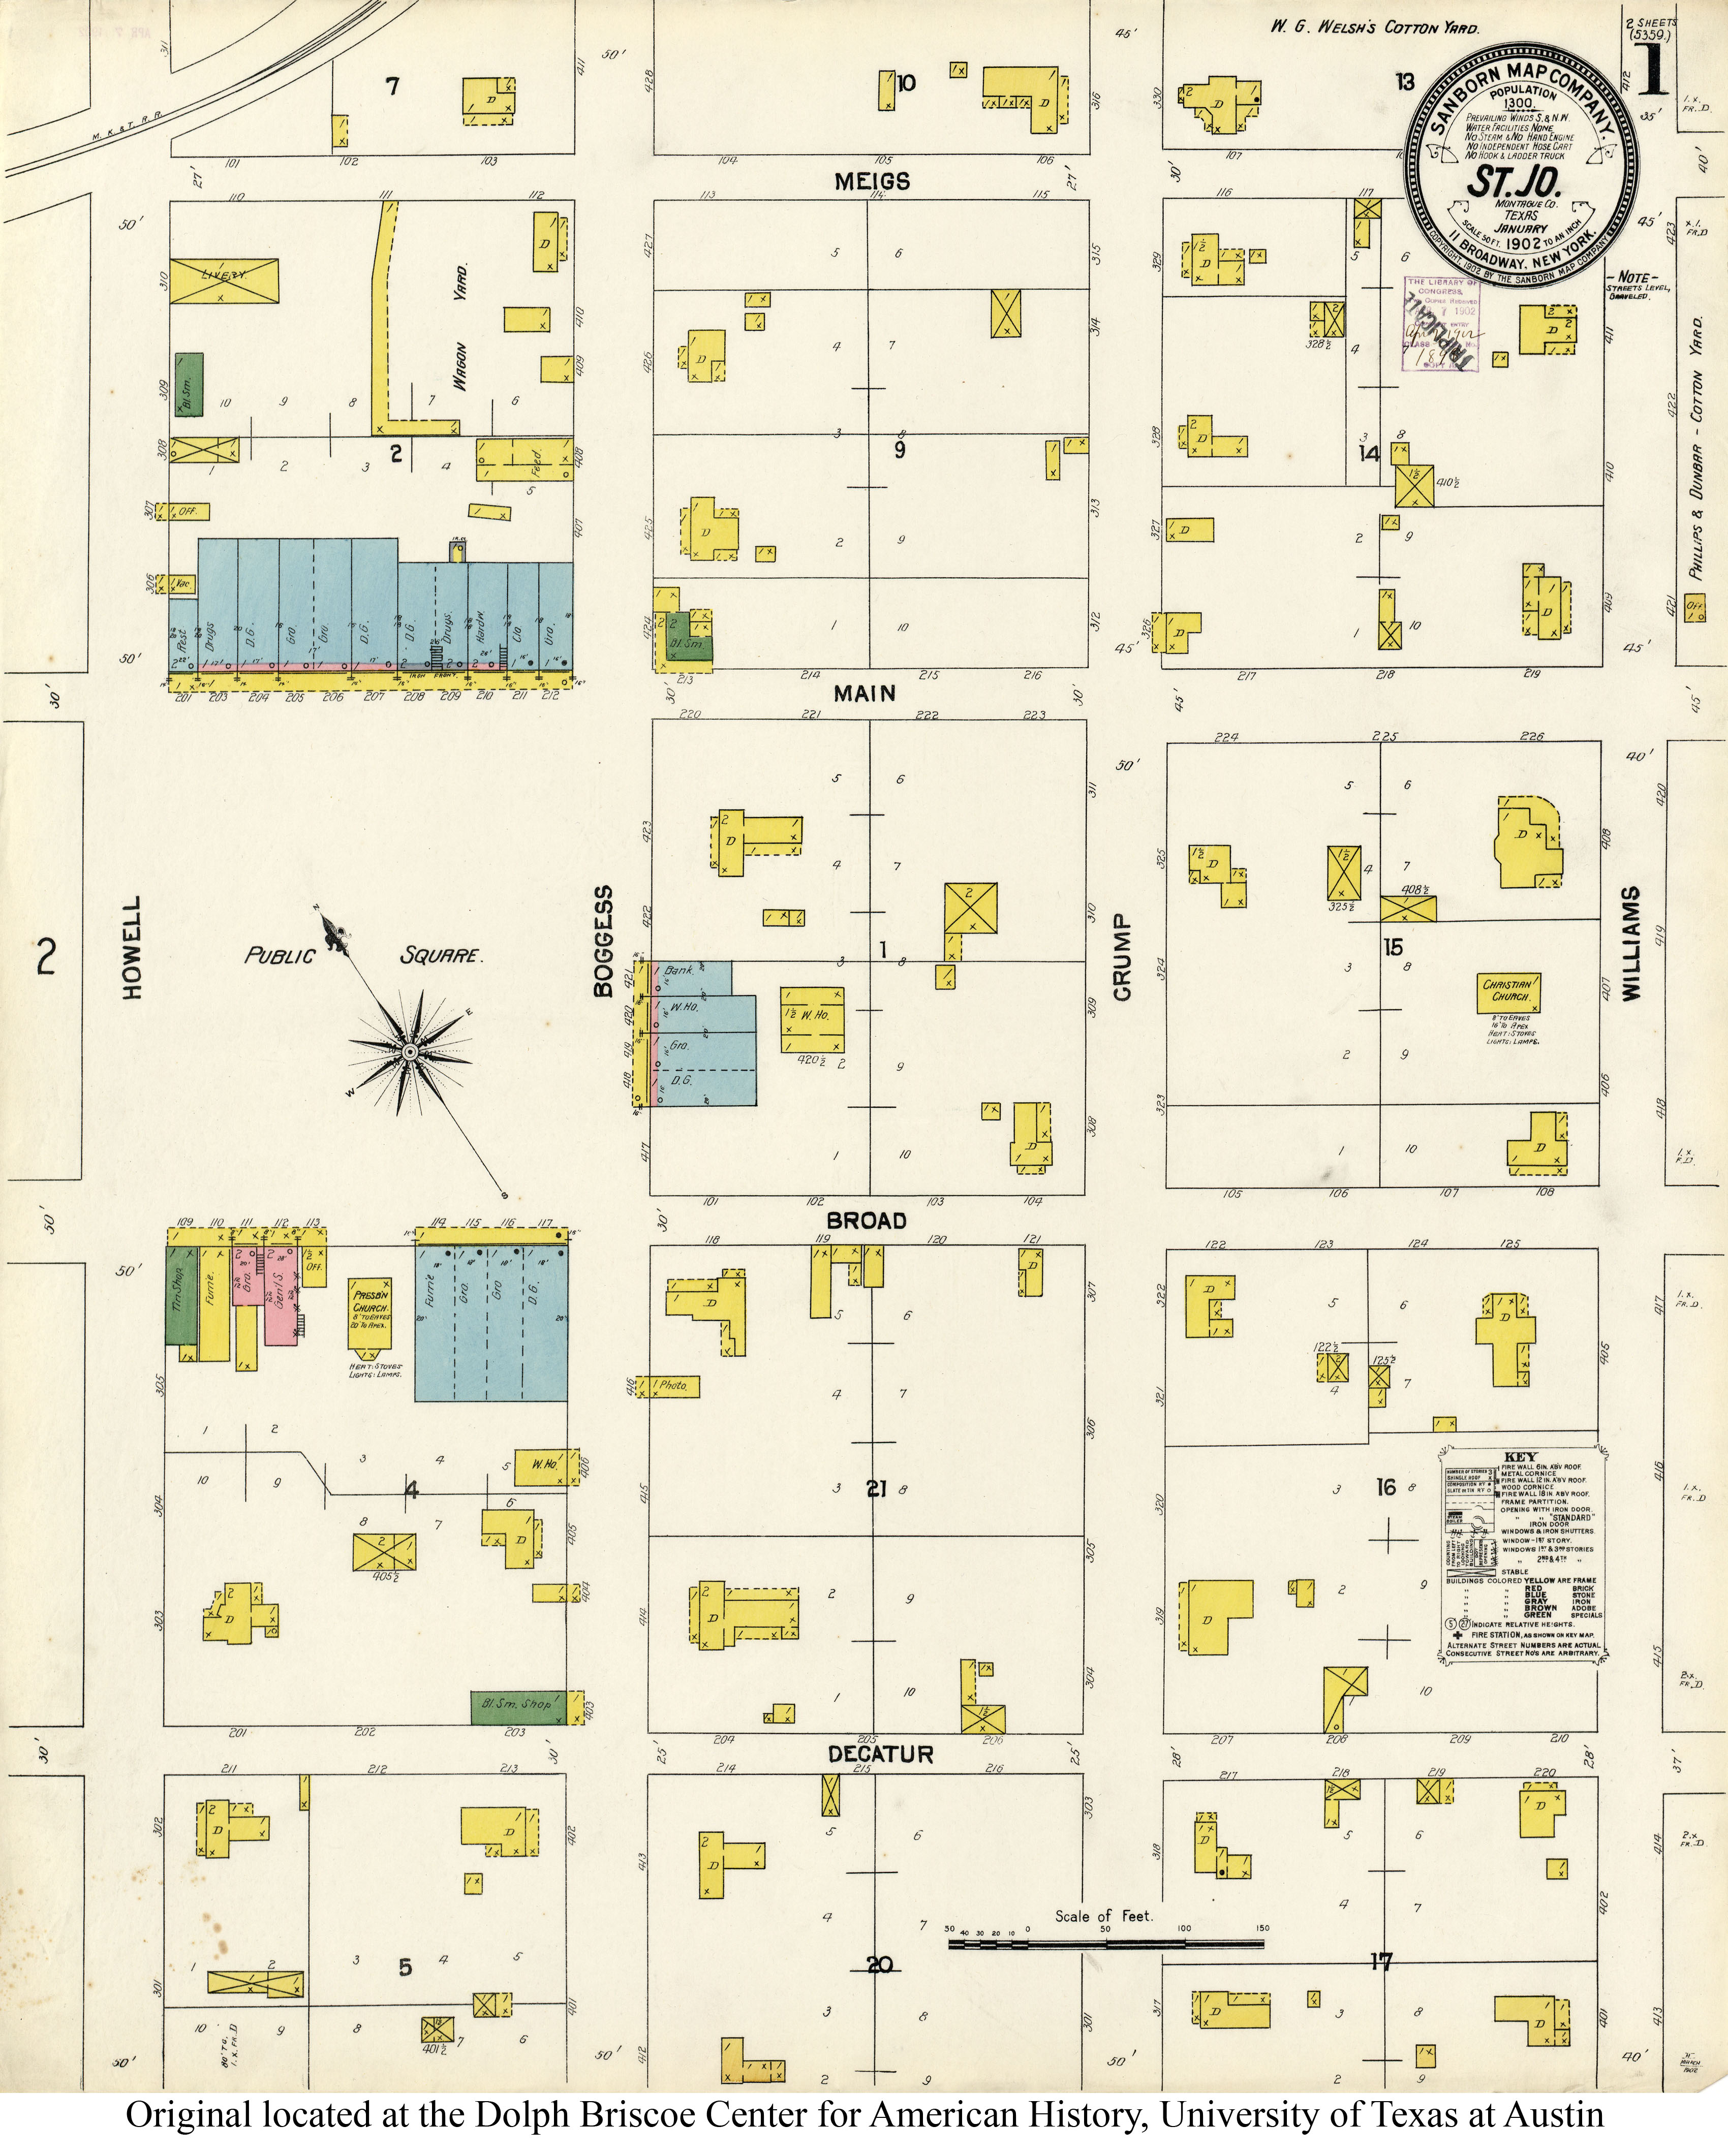 Sanborn Maps of Texas - Perry-Castañeda Map Collection - UT ... on old maps of columbia county, old schools in st. croix county wi, old texas state map,